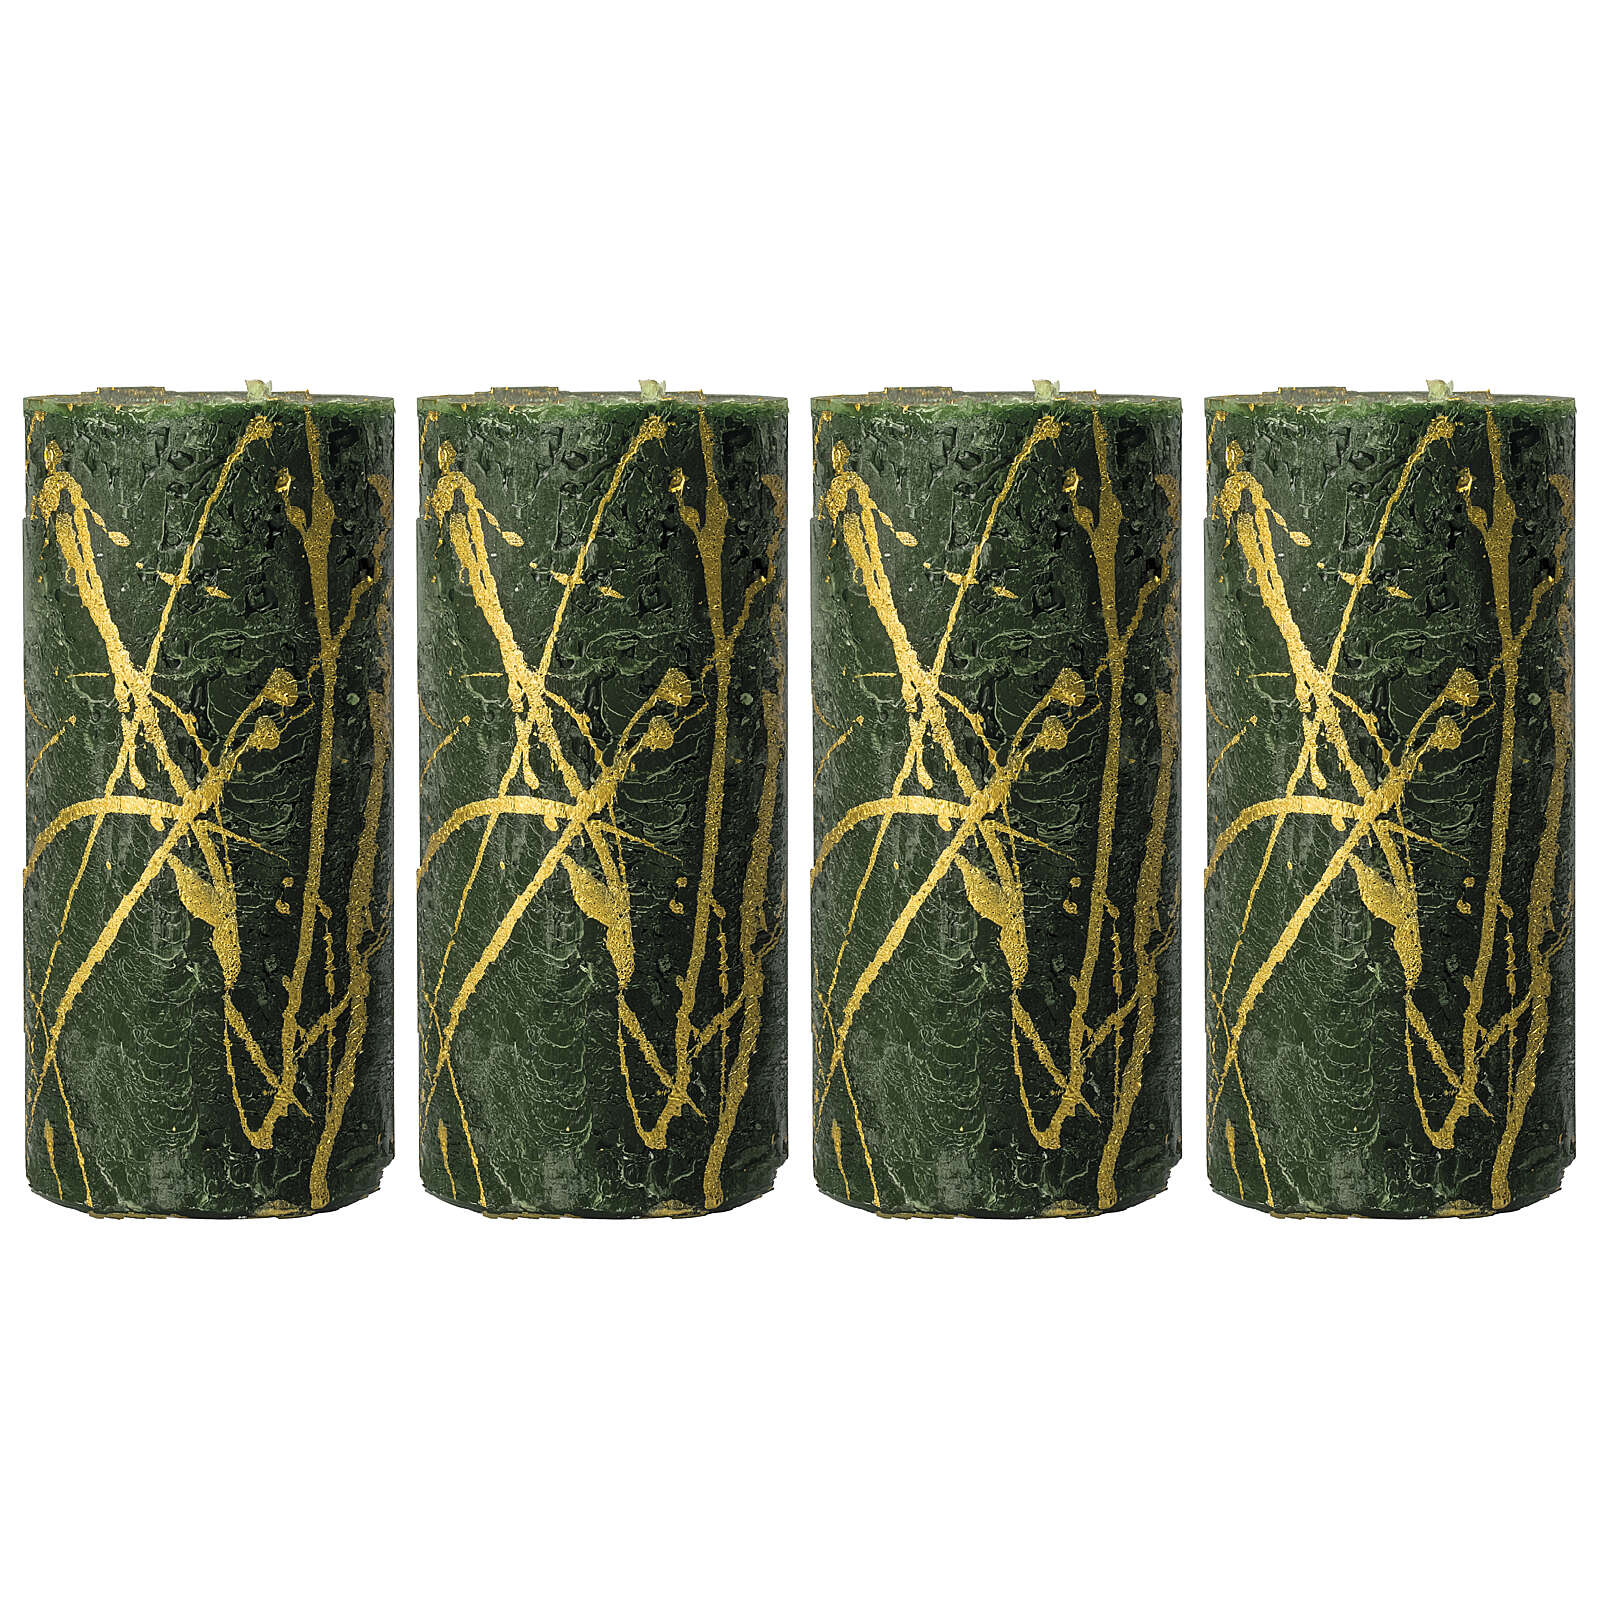 Green Christmas candles, golden drops, set of 4, 140x70 mm 3